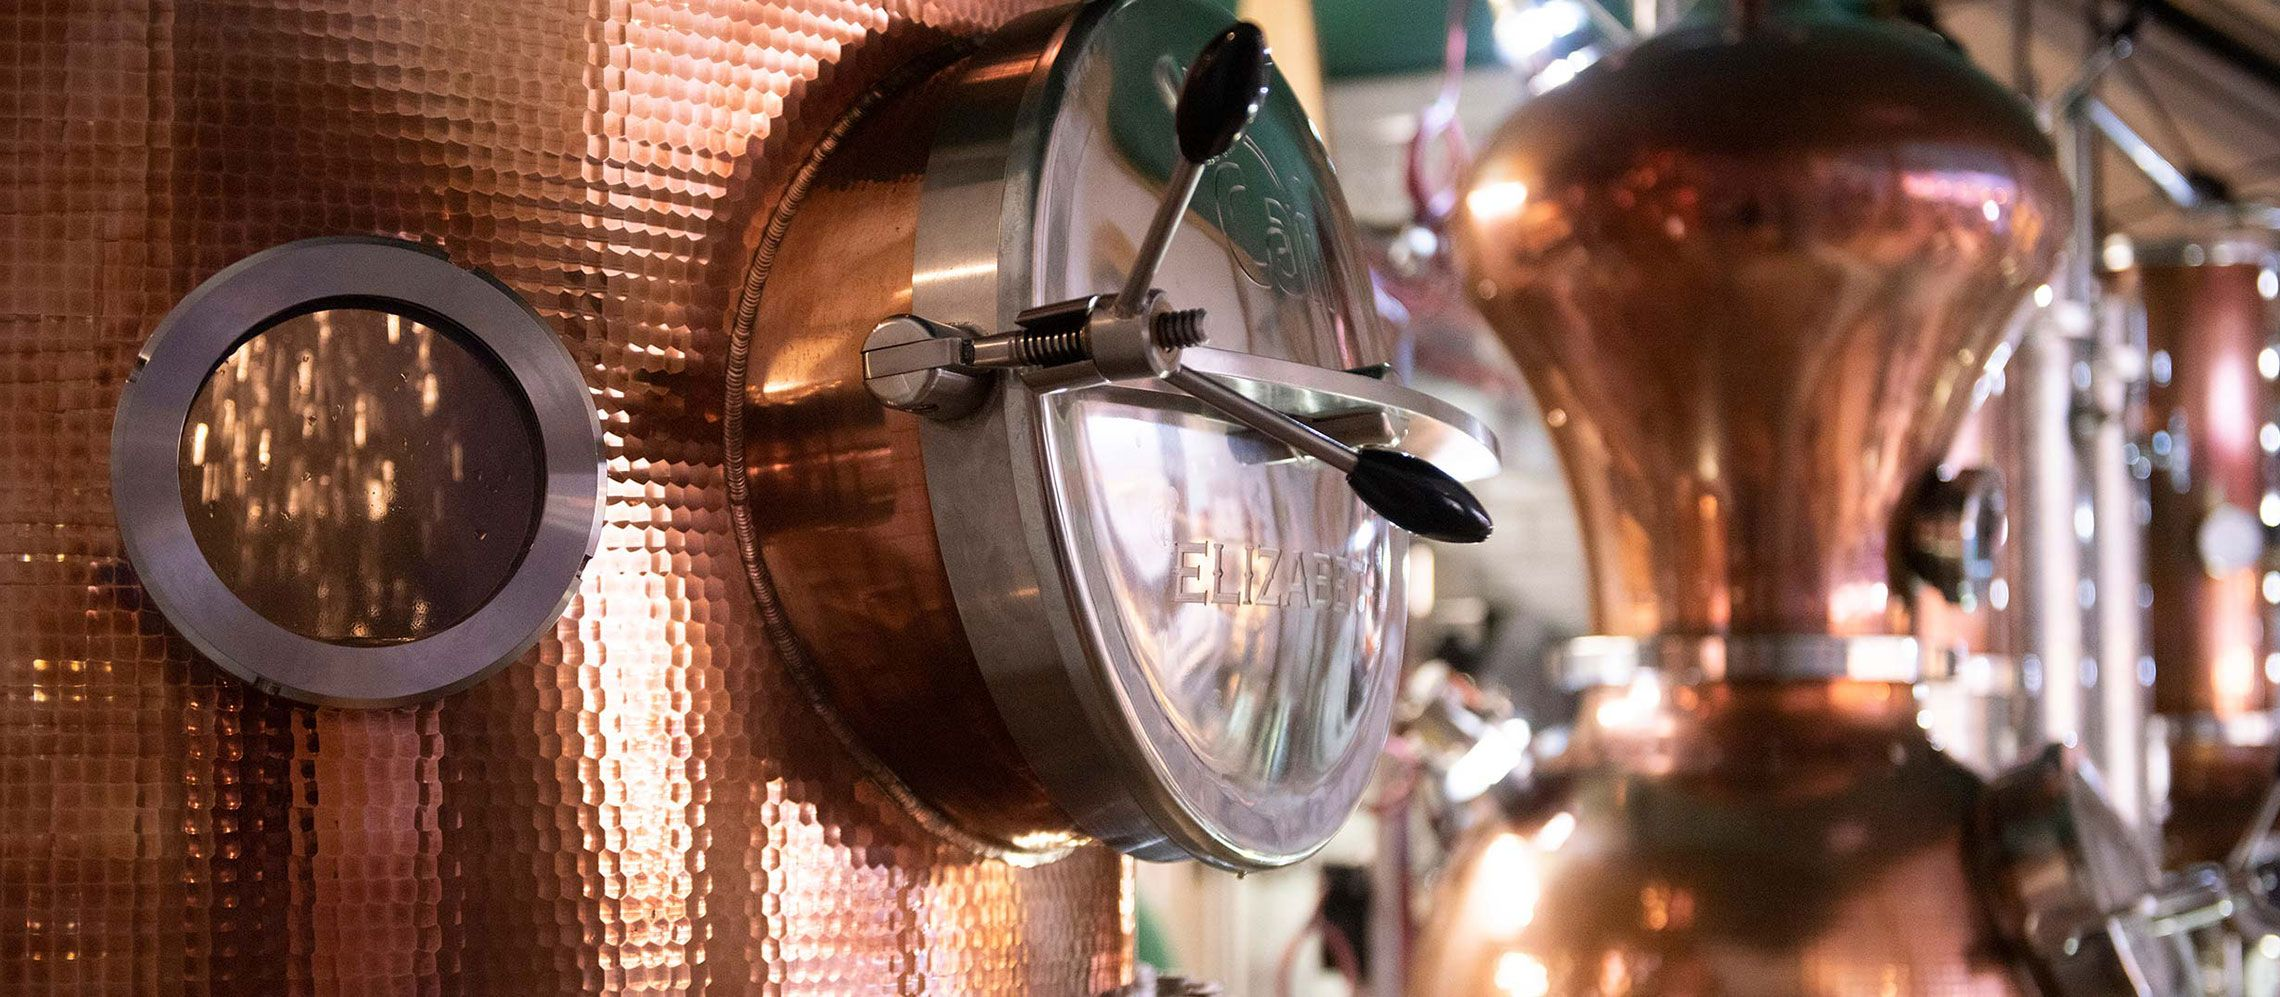 Photo for: List of London Distilleries You Can Visit While Traveling To London